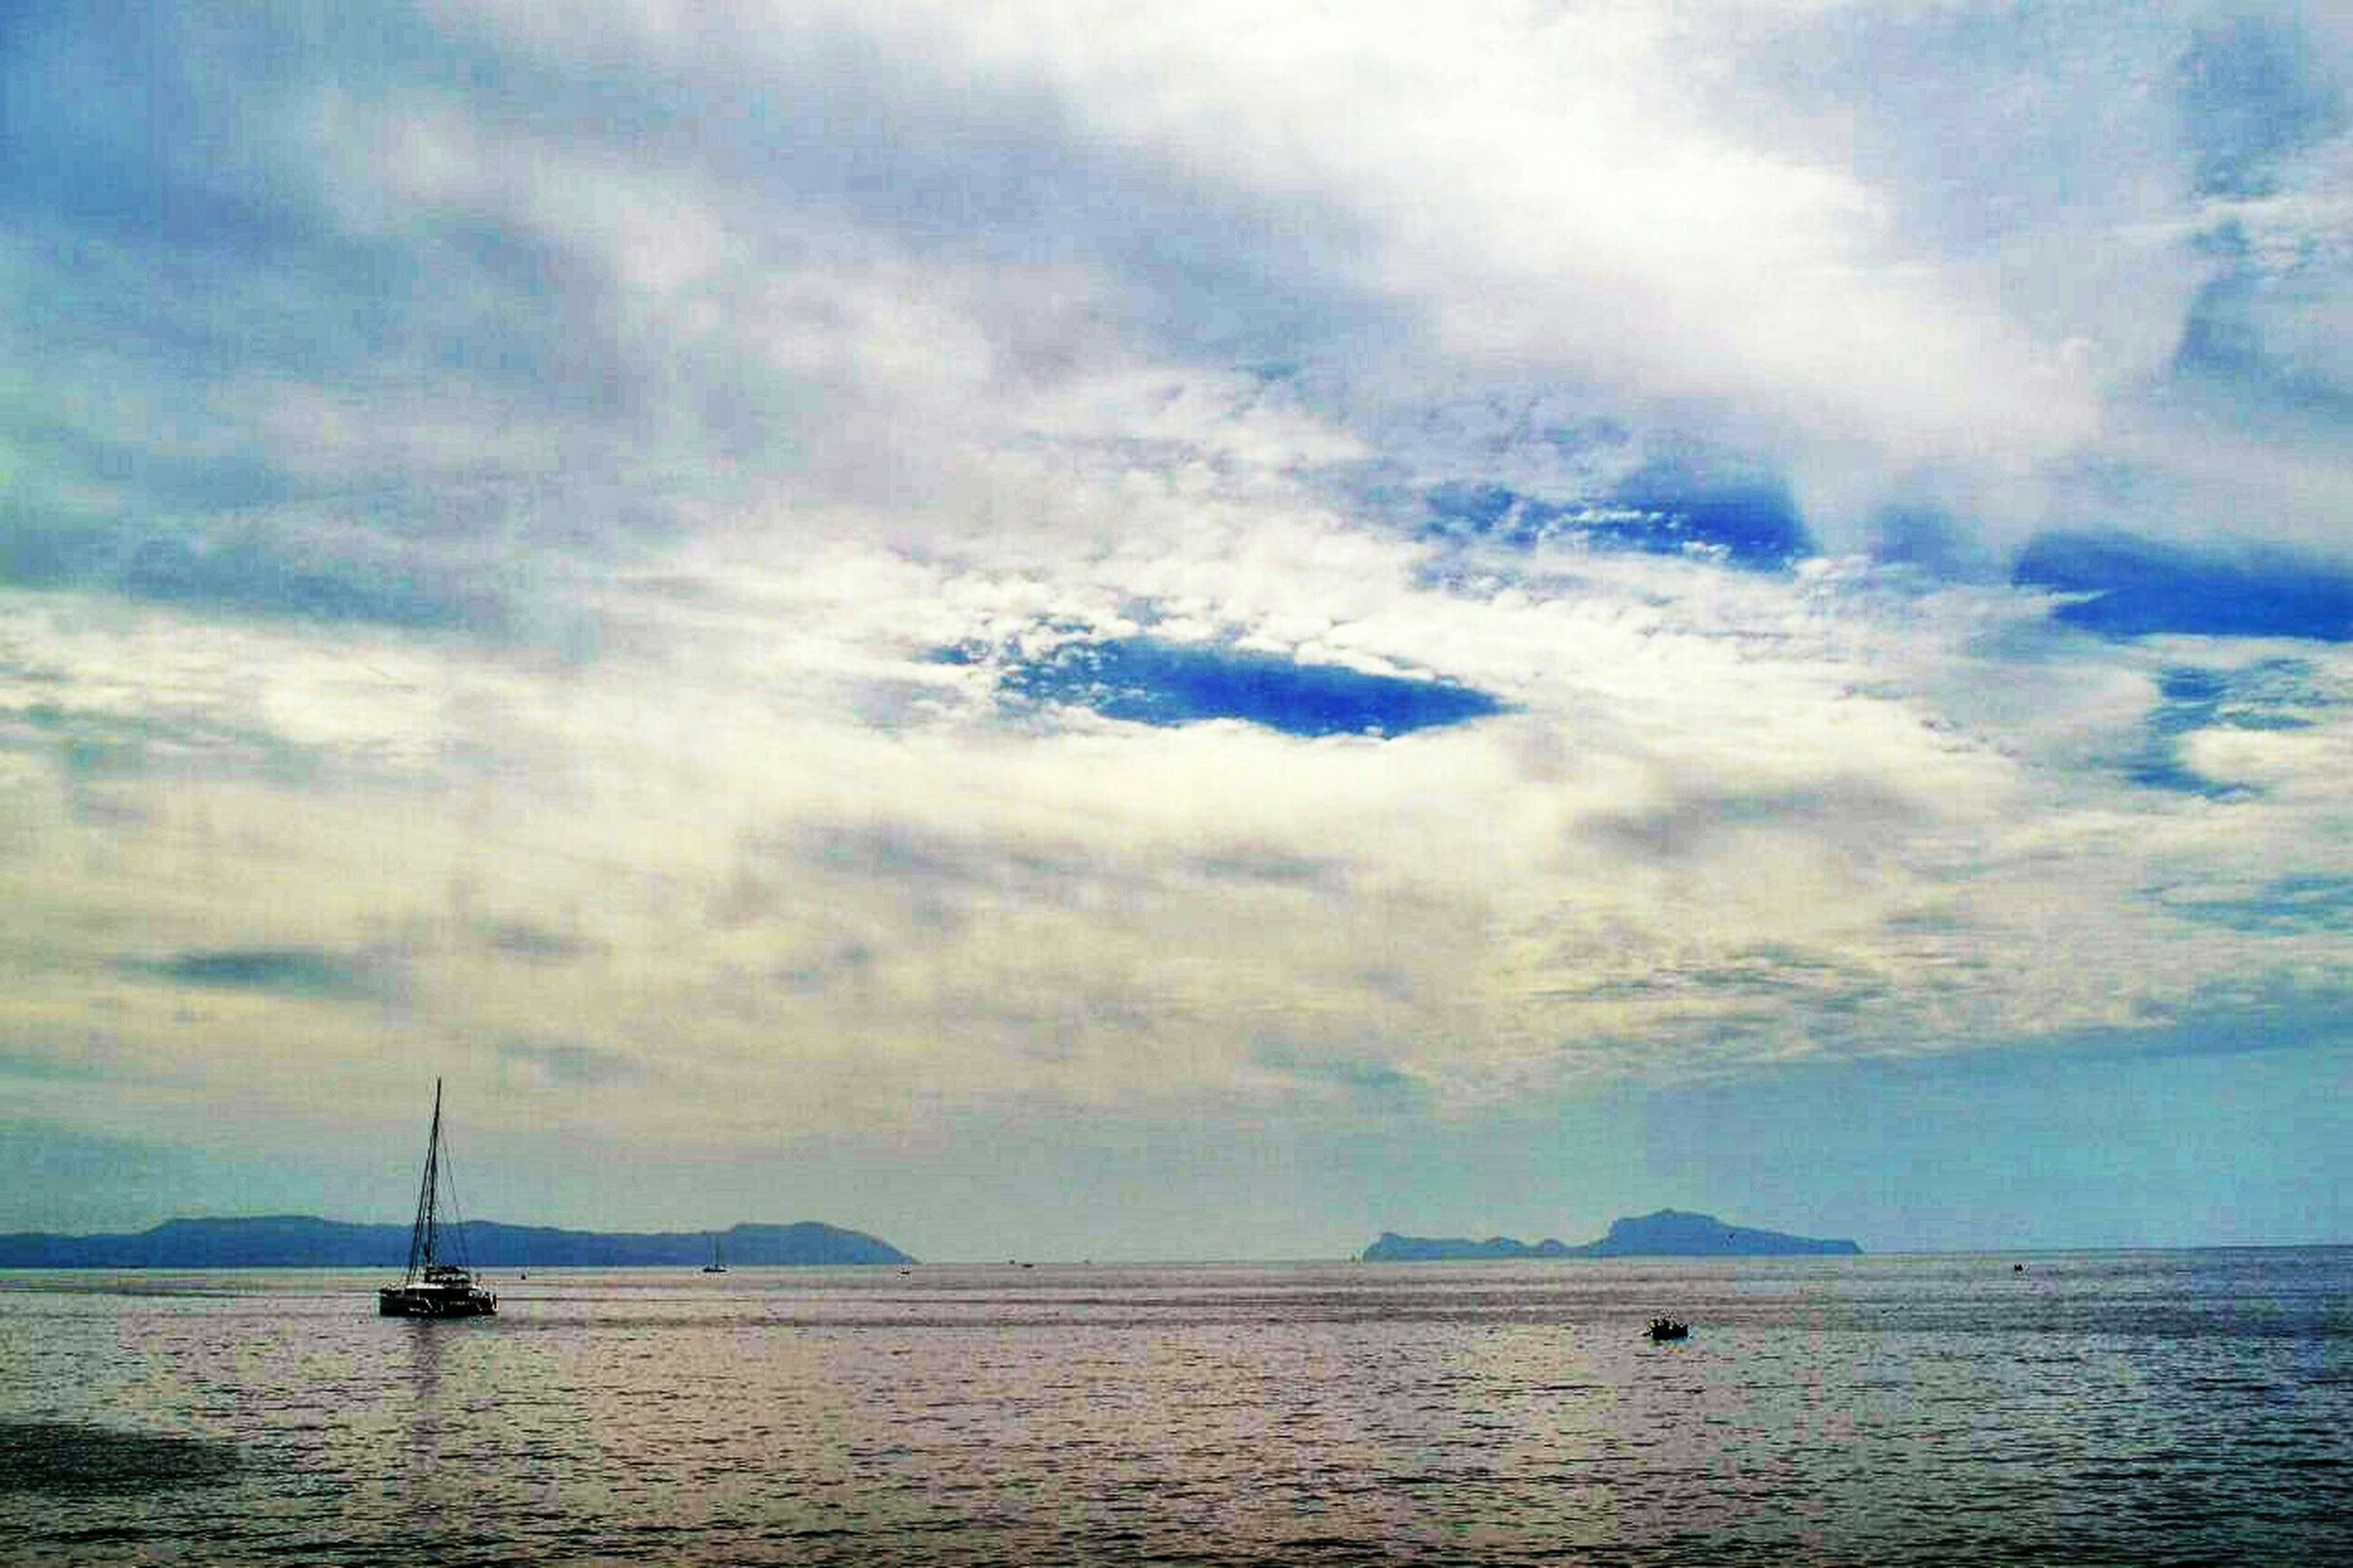 sky, sea, nautical vessel, water, transportation, waterfront, mode of transport, cloud - sky, tranquil scene, tranquility, scenics, boat, beauty in nature, cloudy, horizon over water, nature, cloud, sailing, idyllic, sailboat